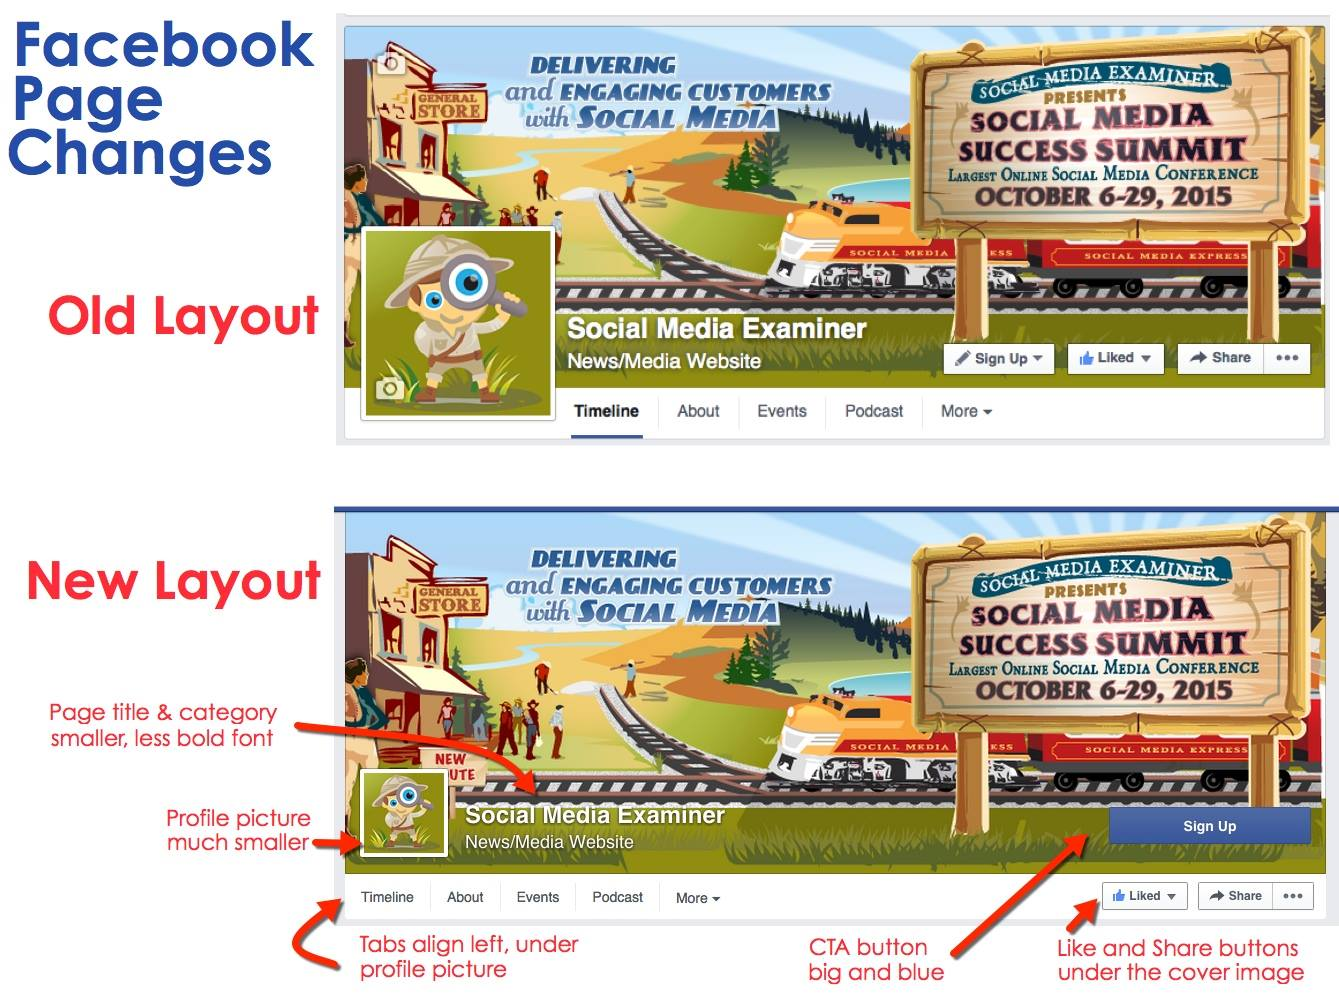 Facebook-Page-Layouts-Changed-Again-1